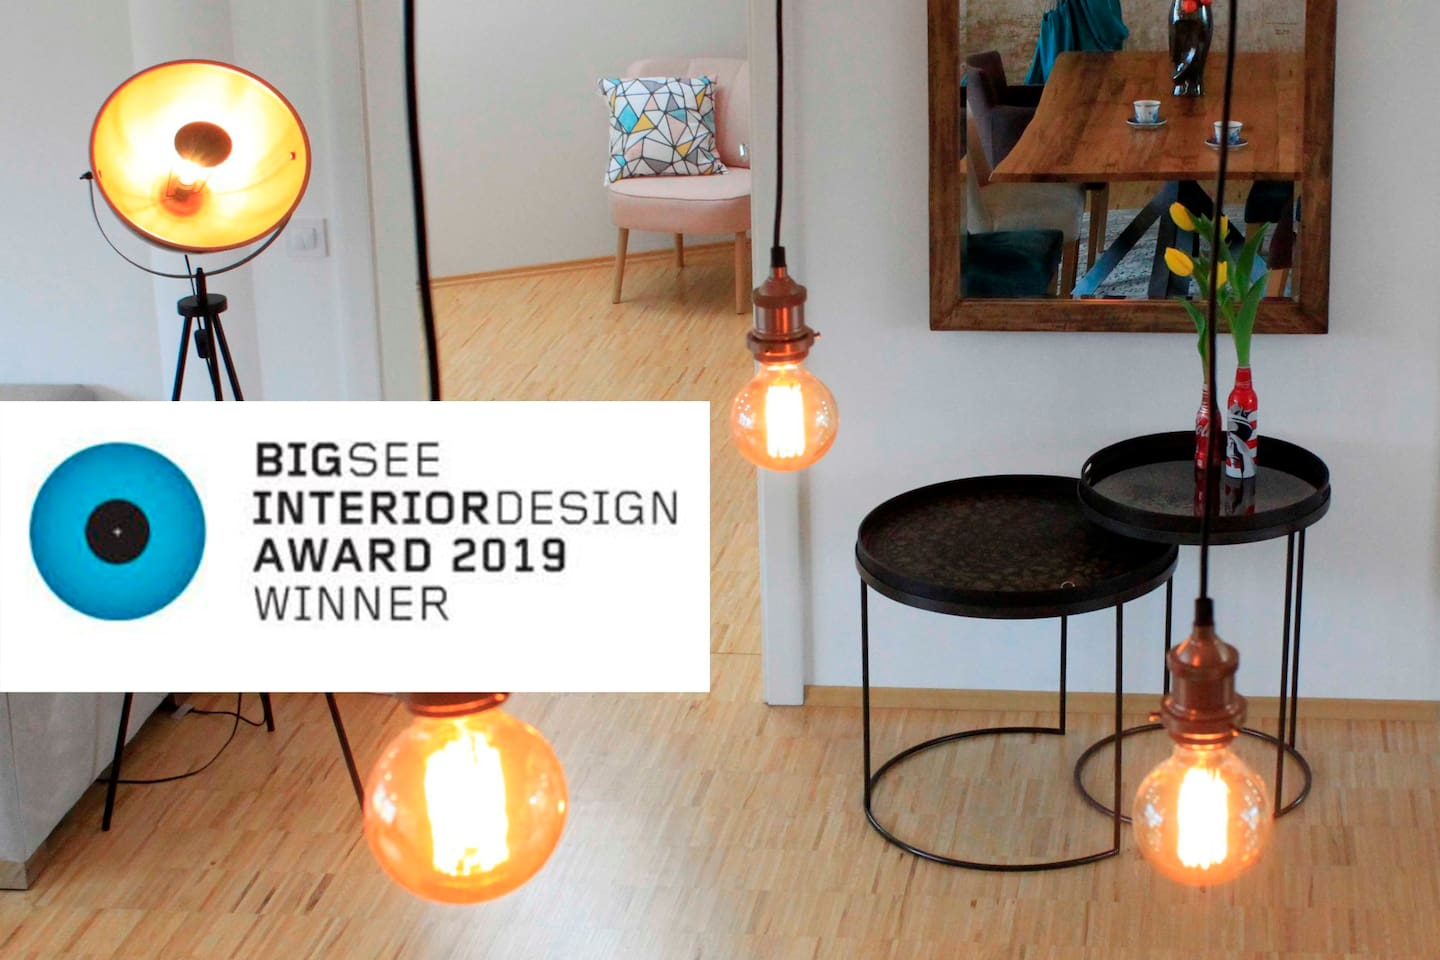 BIGSEE INTERIOR DESIGN AWARD 2019  WINNER - RESIDENTIAL